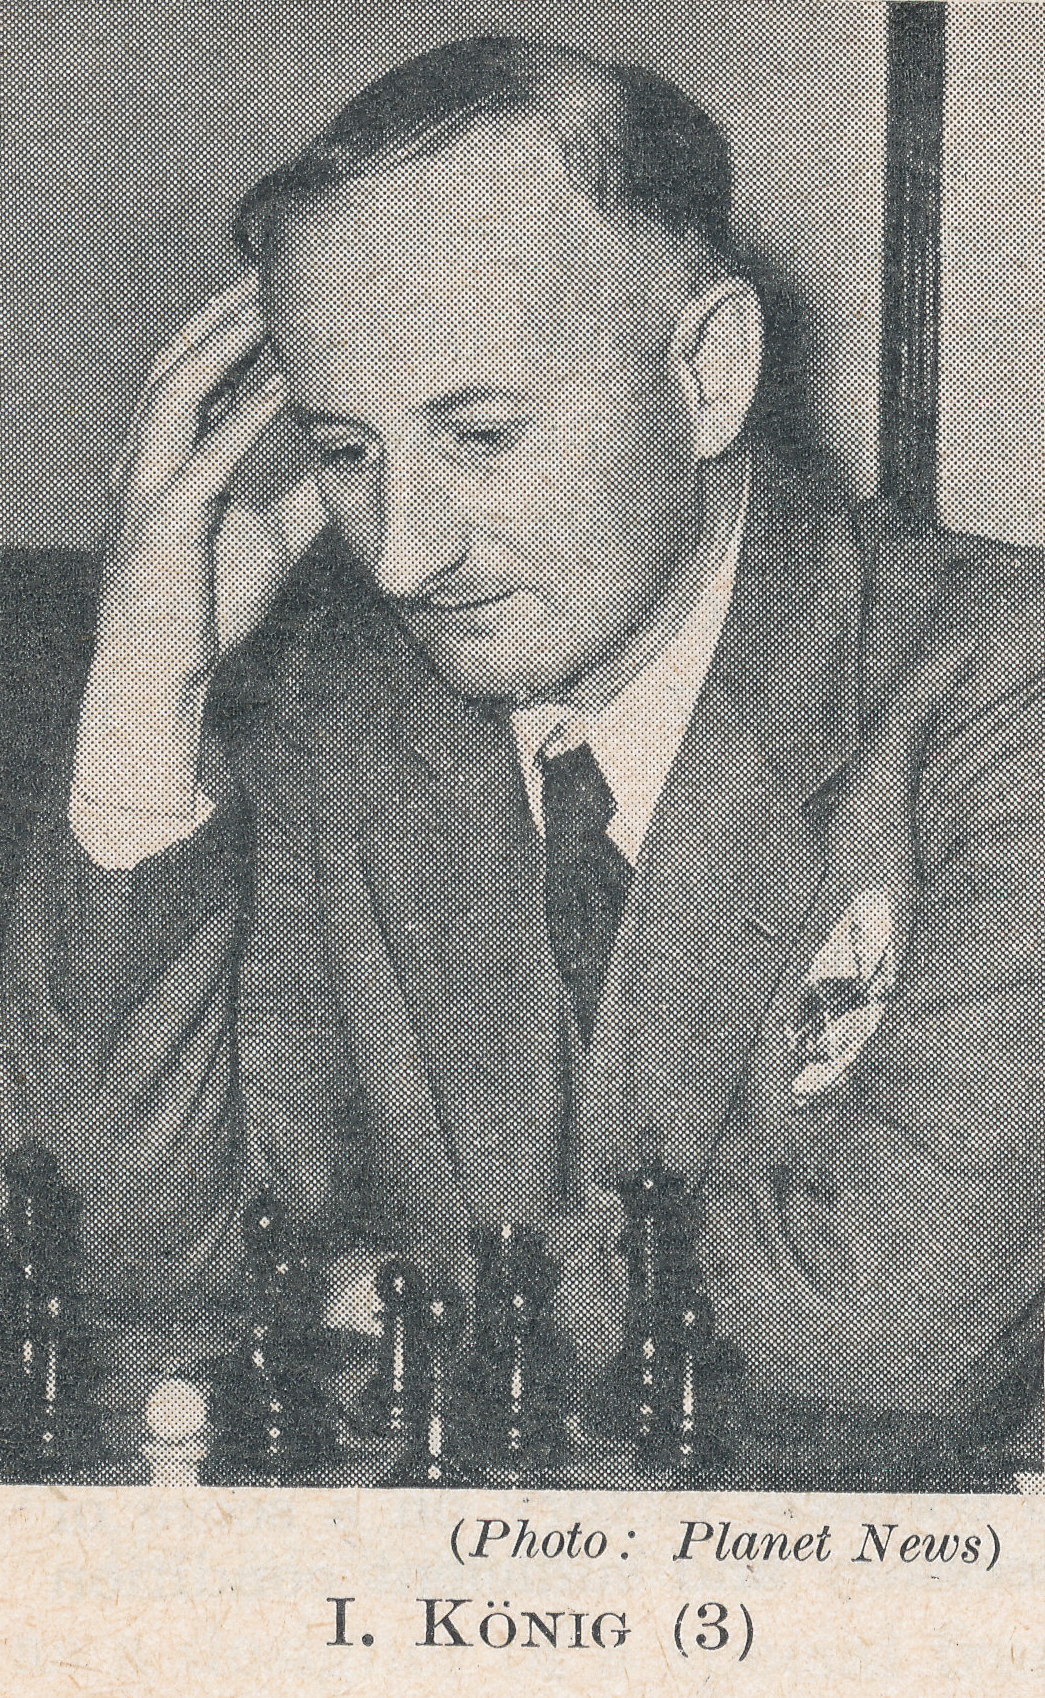 IM Imre (Mirko) König (2-ix-1901 9-ix-1992). Source : The Anglo-Soviet Radio Chess Match